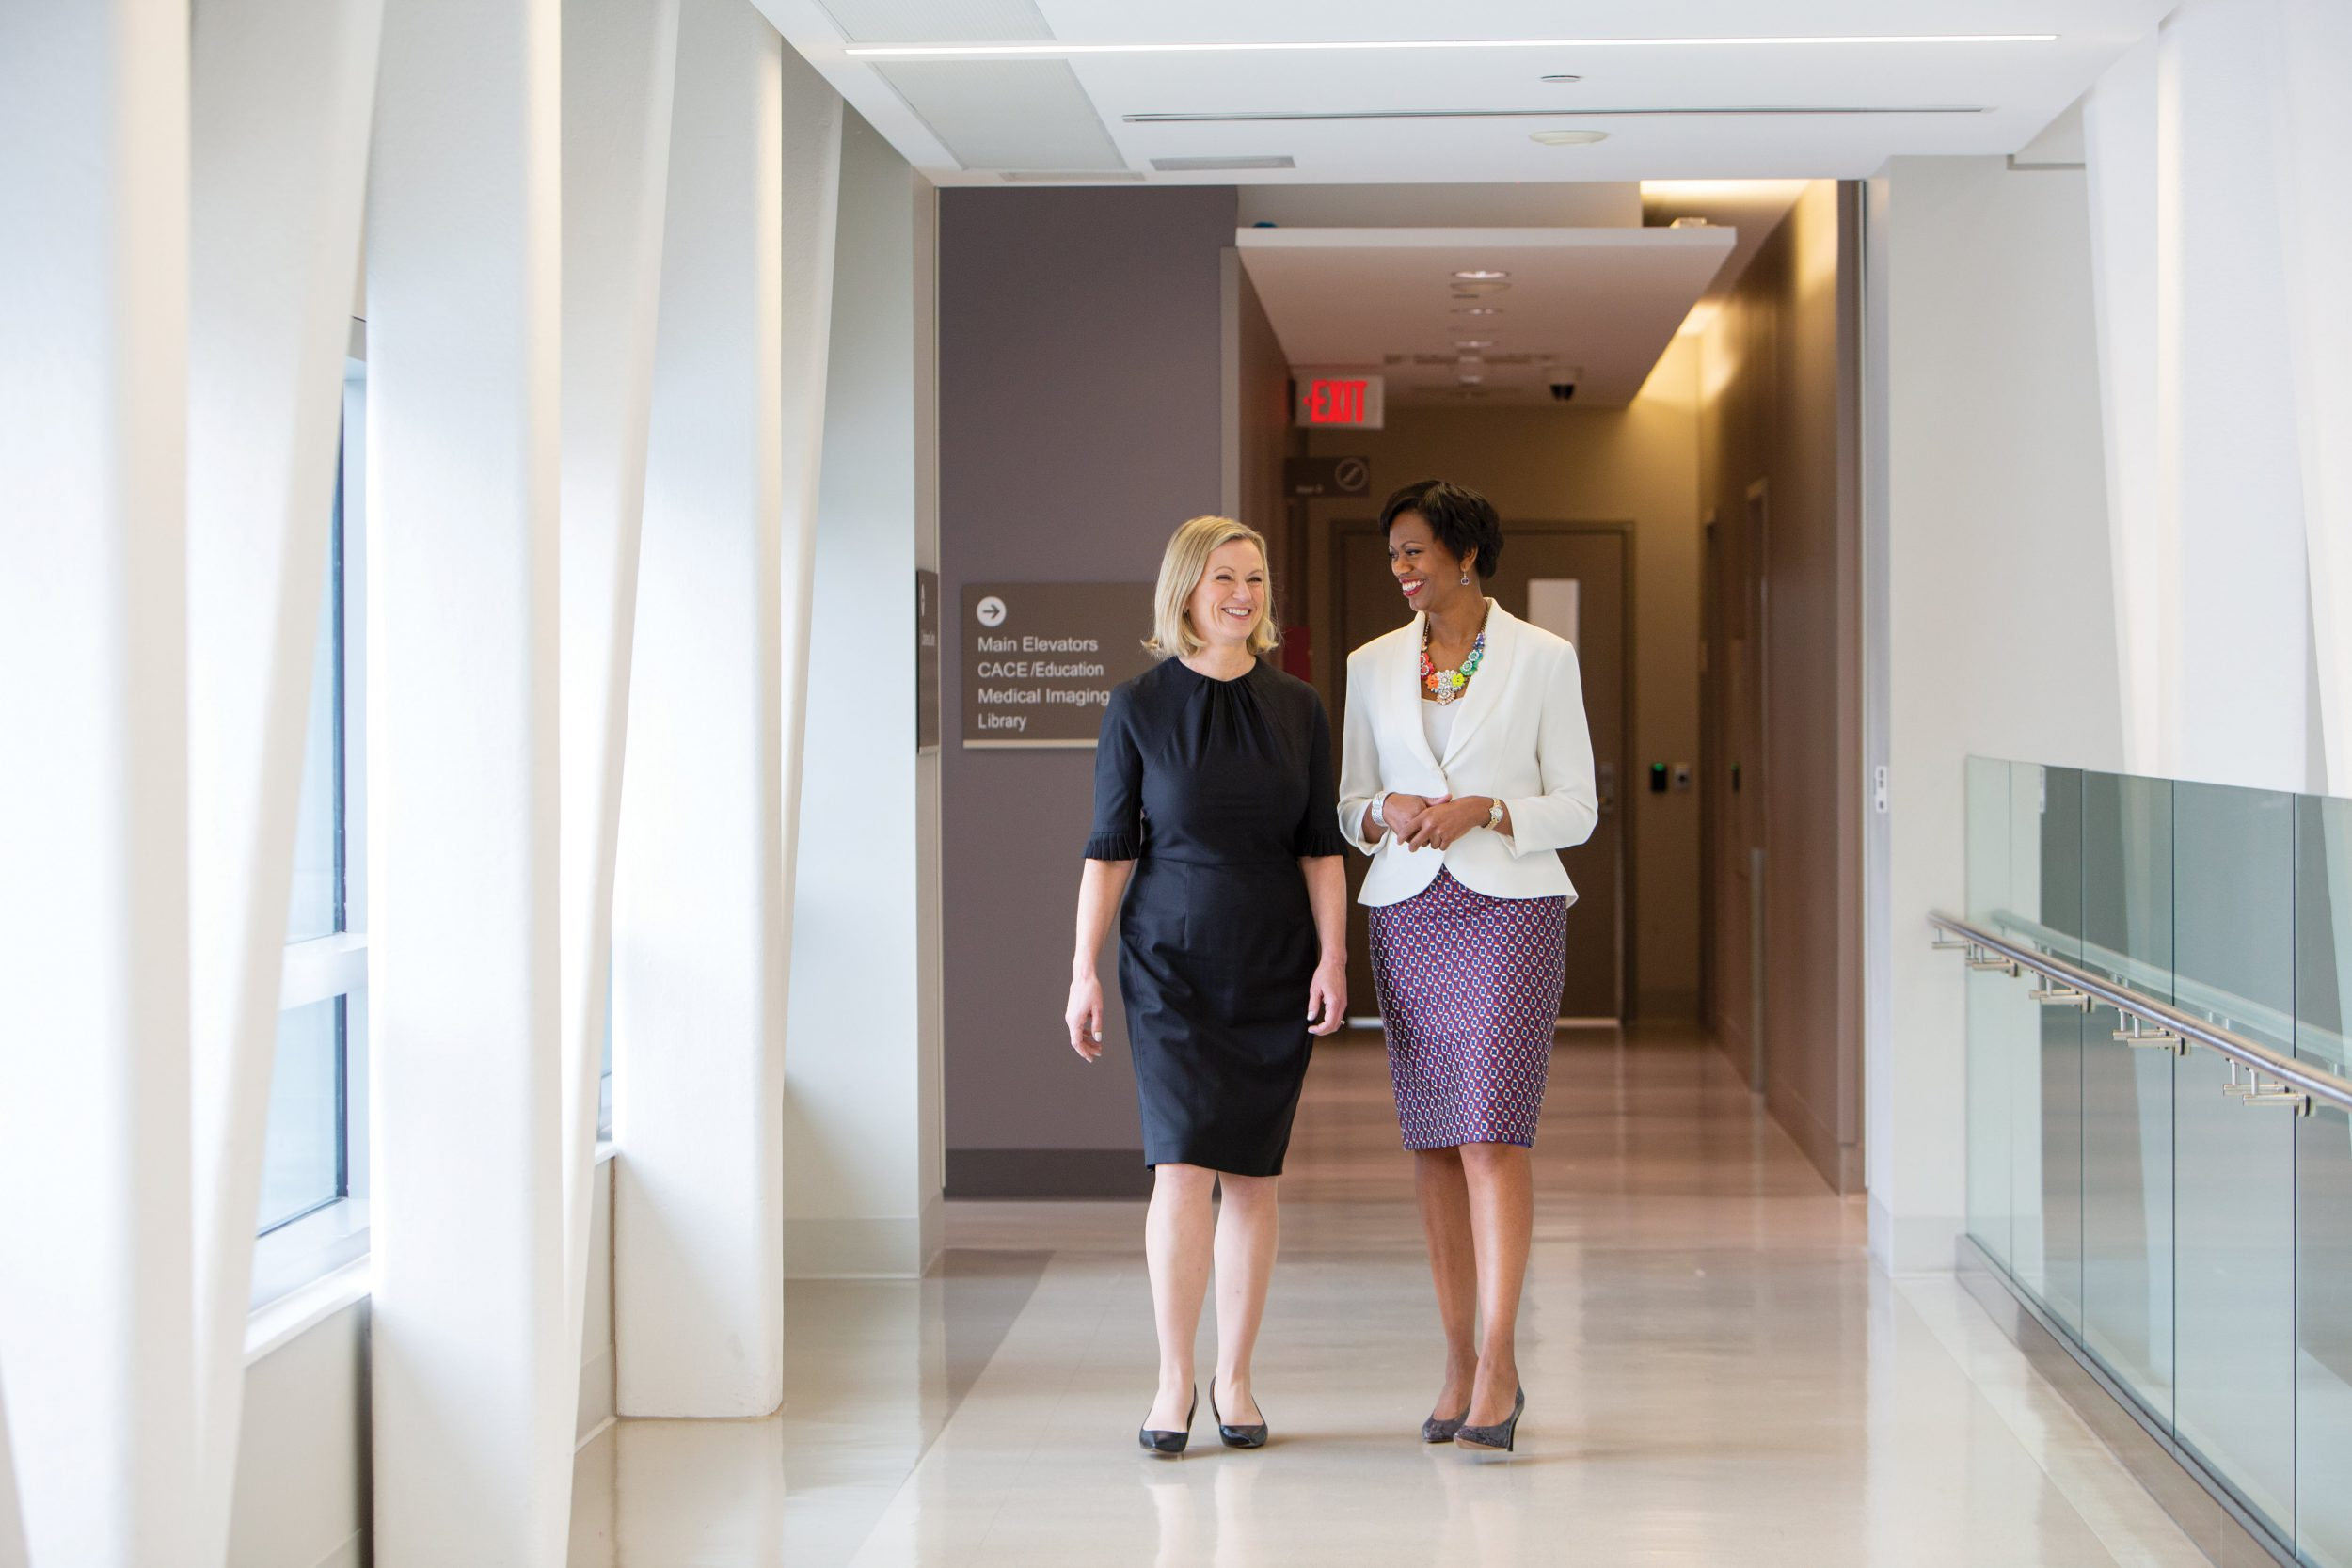 Heather McPherson, CEO and President, Women's College Hospital and Jennifer Bernard, CEO & President of Women's College Hospital Foundation walk down a brightly lit hospital hallway